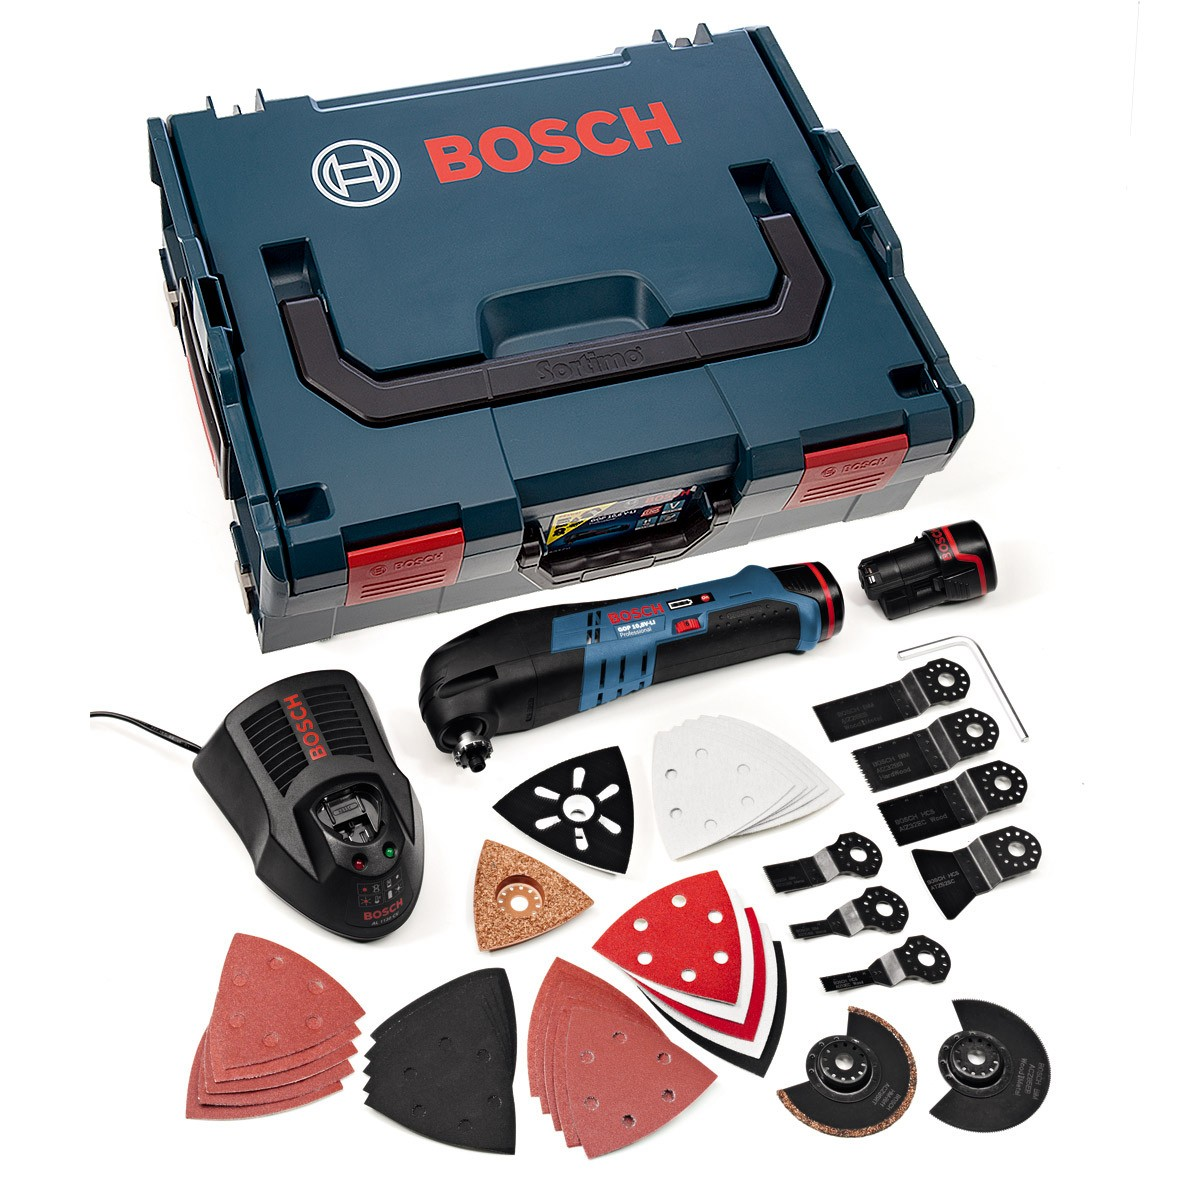 Bosch gop 10 8 v li multi cutter inc 2x 2 5ah batt 36 accessories in l boxx 060185807f - Bosch 10 8 v ...